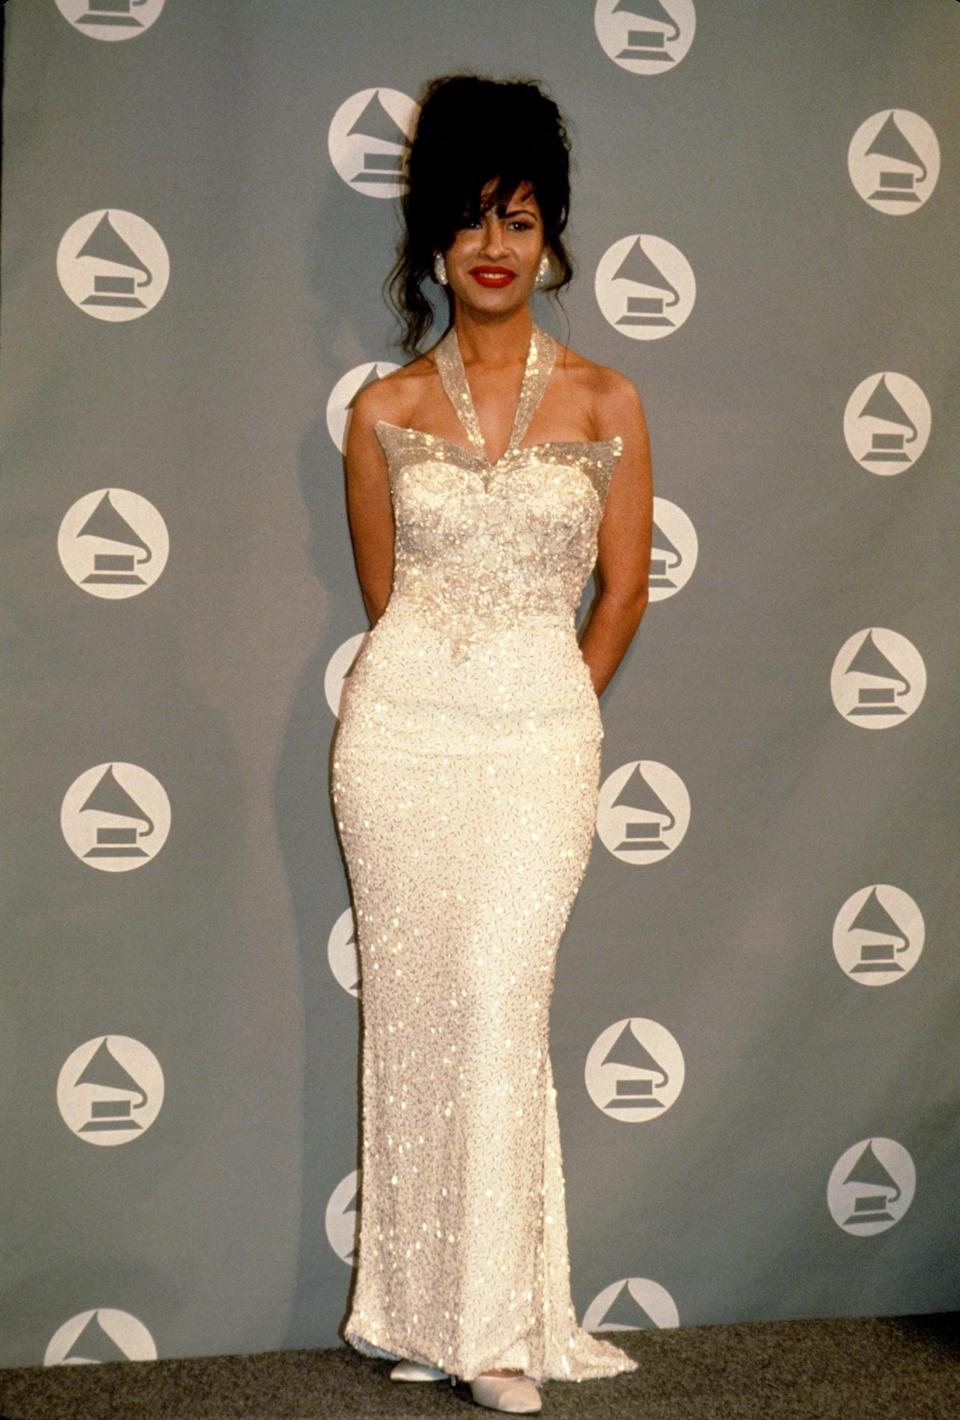 """<p>Just a year before her tragic death, Selena wore this dazzling crystal-covered white halter dress to the <a href=""""https://www.popsugar.com/latina/Did-Selena-Win-Grammy-43694425"""" class=""""link rapid-noclick-resp"""" rel=""""nofollow noopener"""" target=""""_blank"""" data-ylk=""""slk:1994 Grammys"""">1994 Grammys</a>, adding a pop of color with her signature red lips. </p>"""